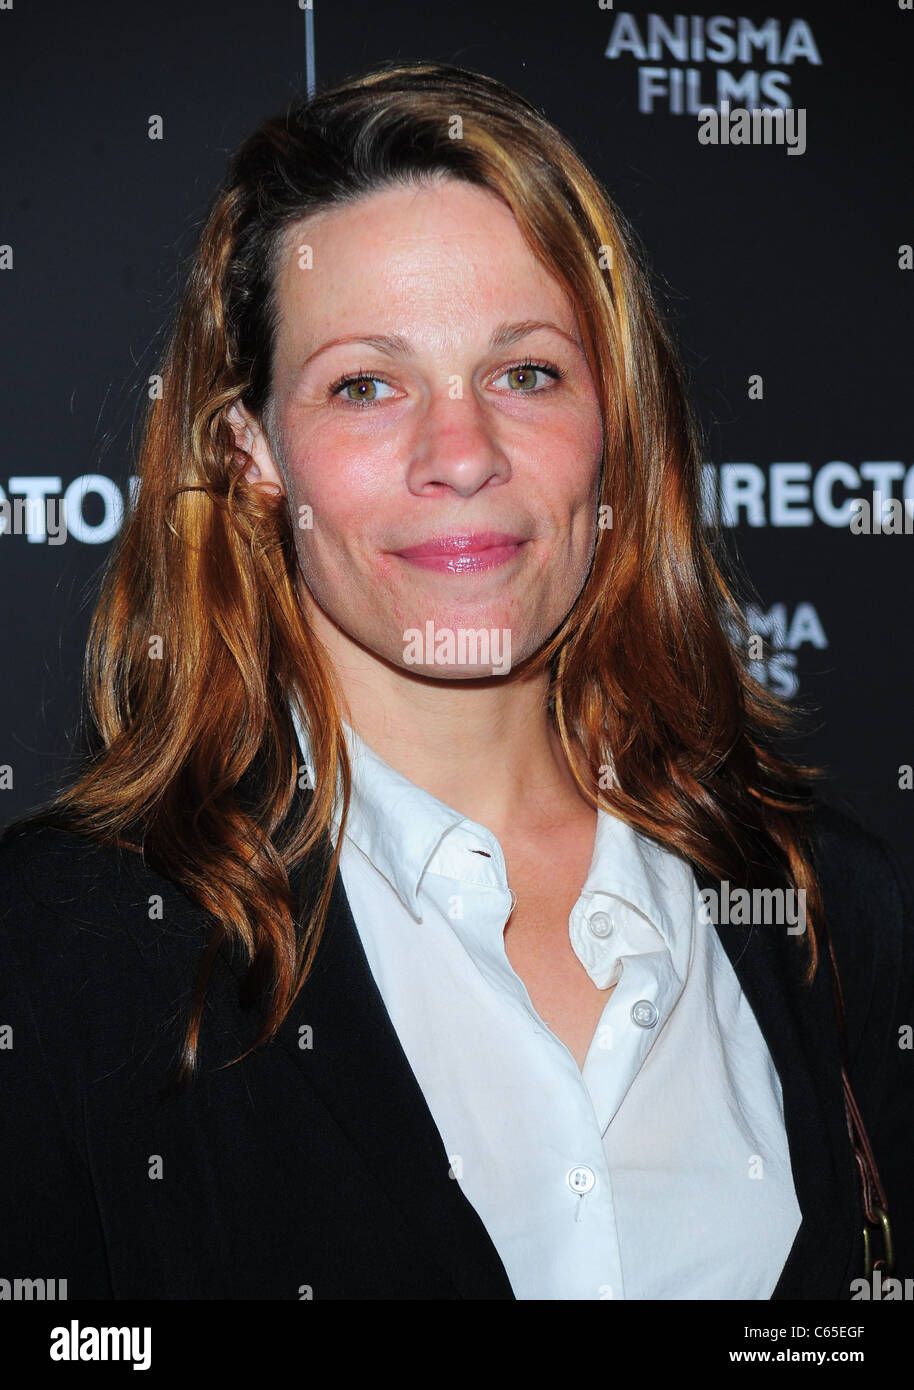 Lili Taylor at arrivals for GREAT DIRECTORS Premiere, MoMA Museum of Modern Art, New York, NY June 22, 2010. Photo - Stock Image